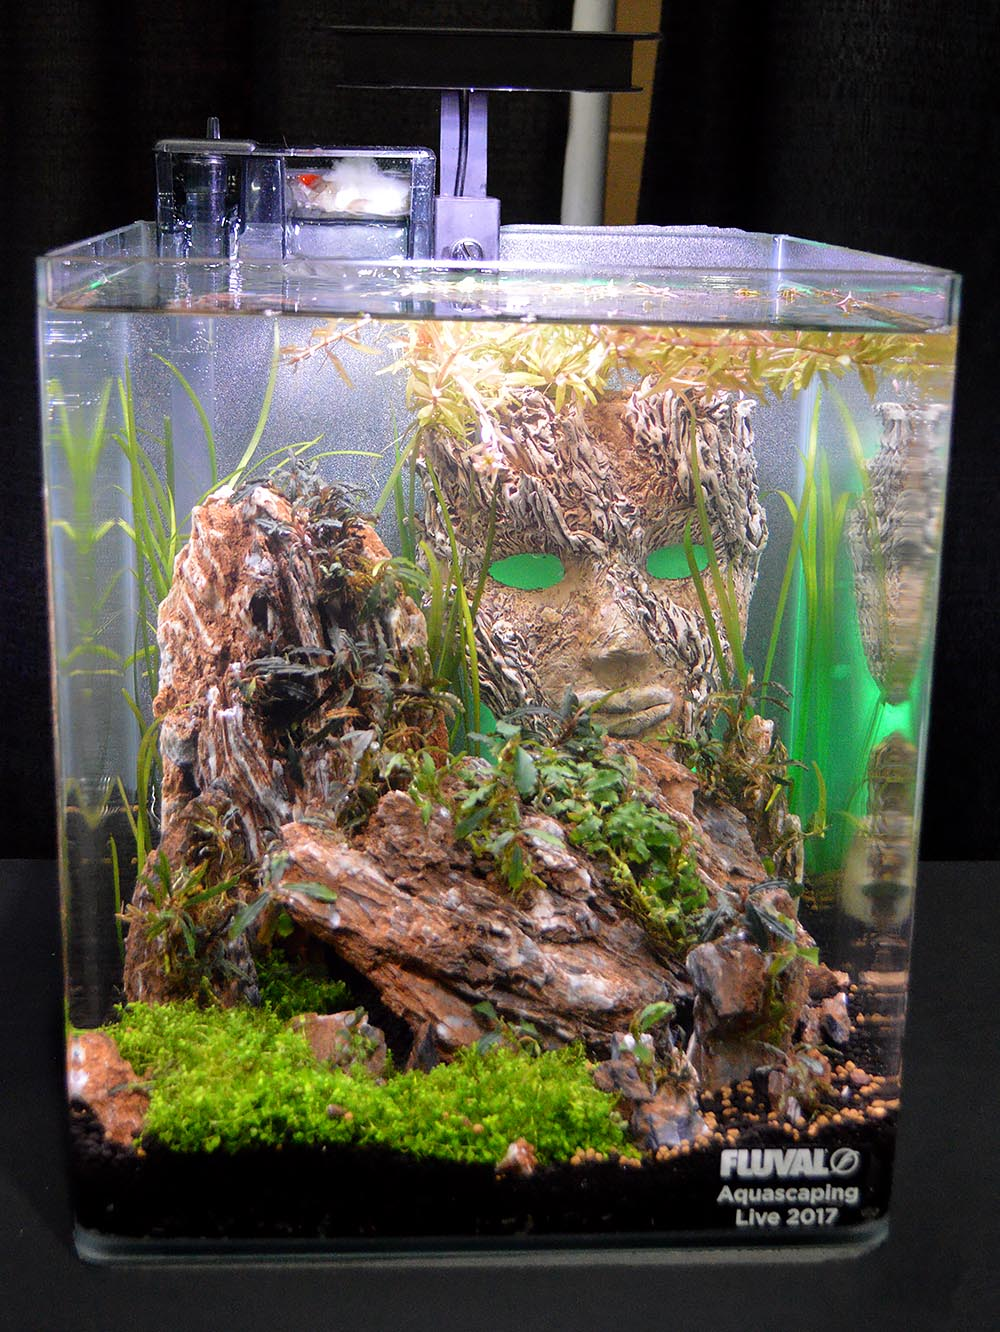 Aquascape by Sean Peck